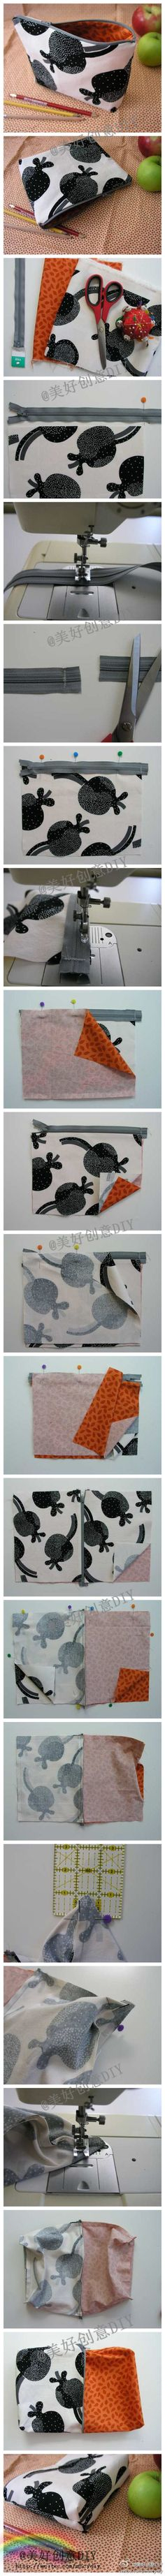 Making this cute pouch would be a great way to practice sewing a zipper